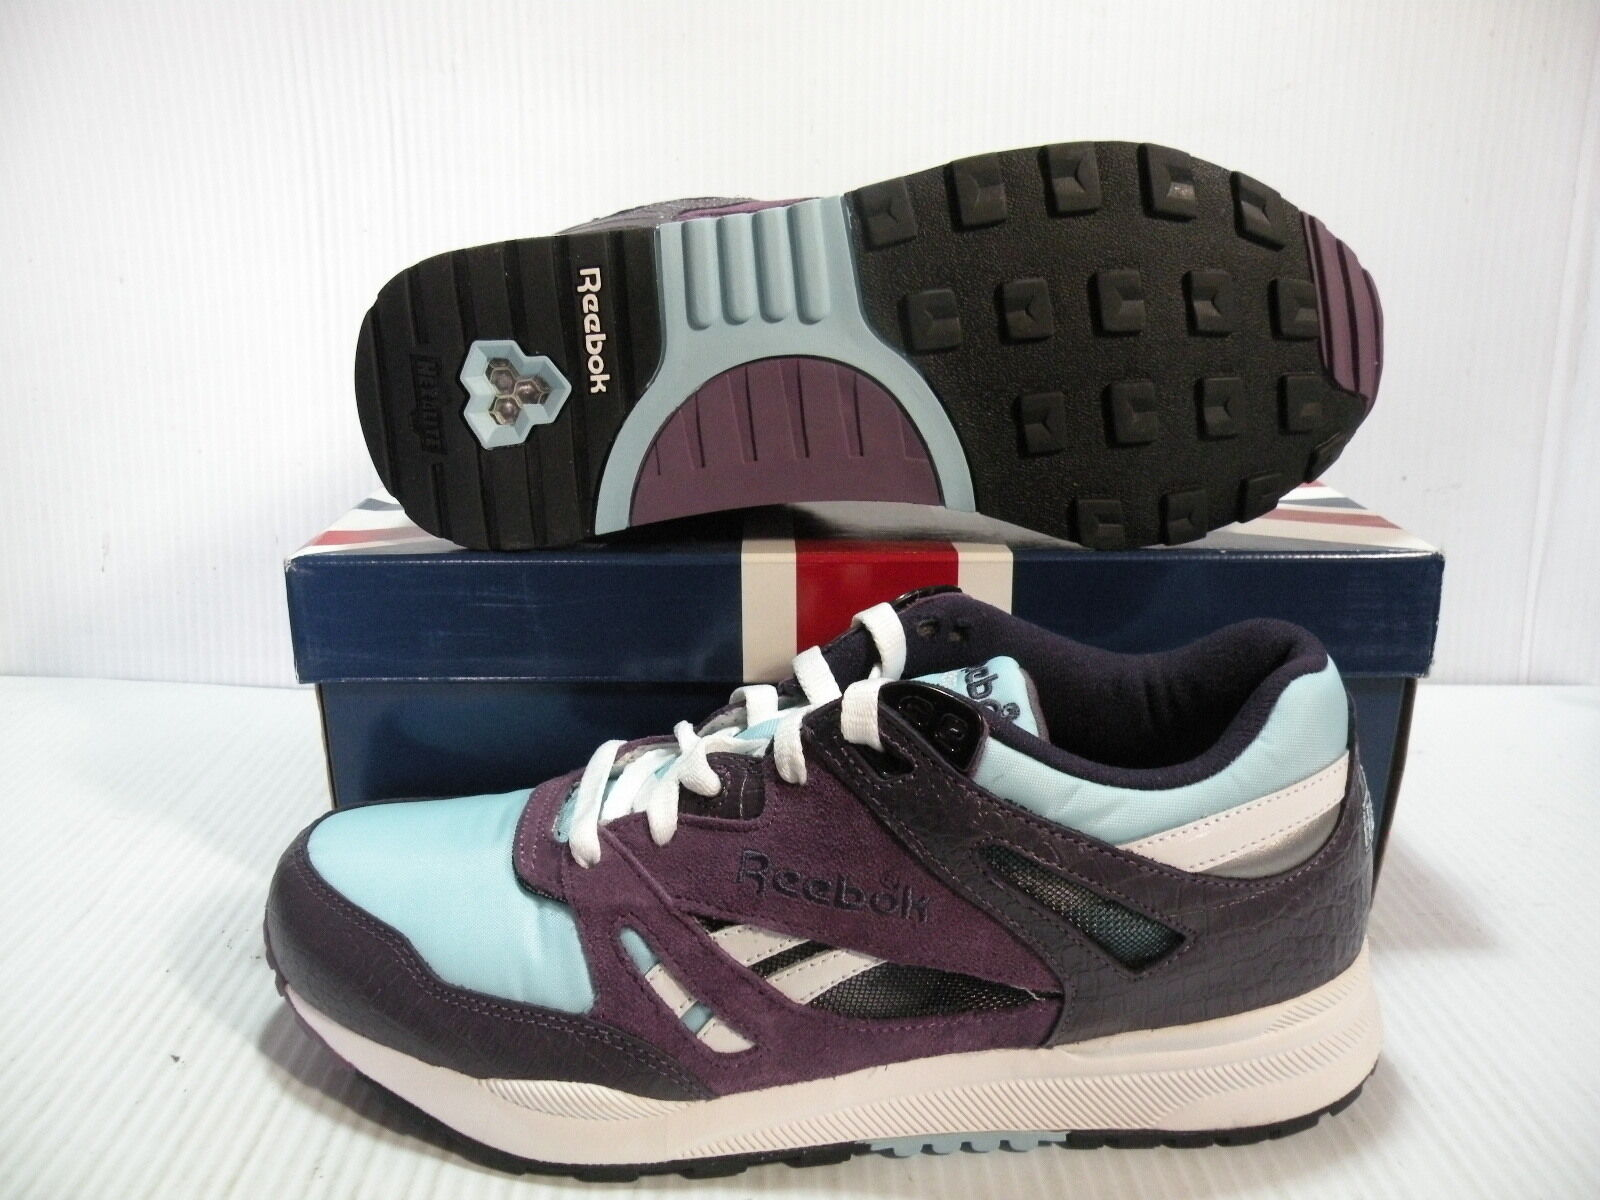 REEBOK VENTILATOR LXR LOW SNEAKERS MEN SHOES PURPLE blueE -158106 SIZE 8.5 NEW